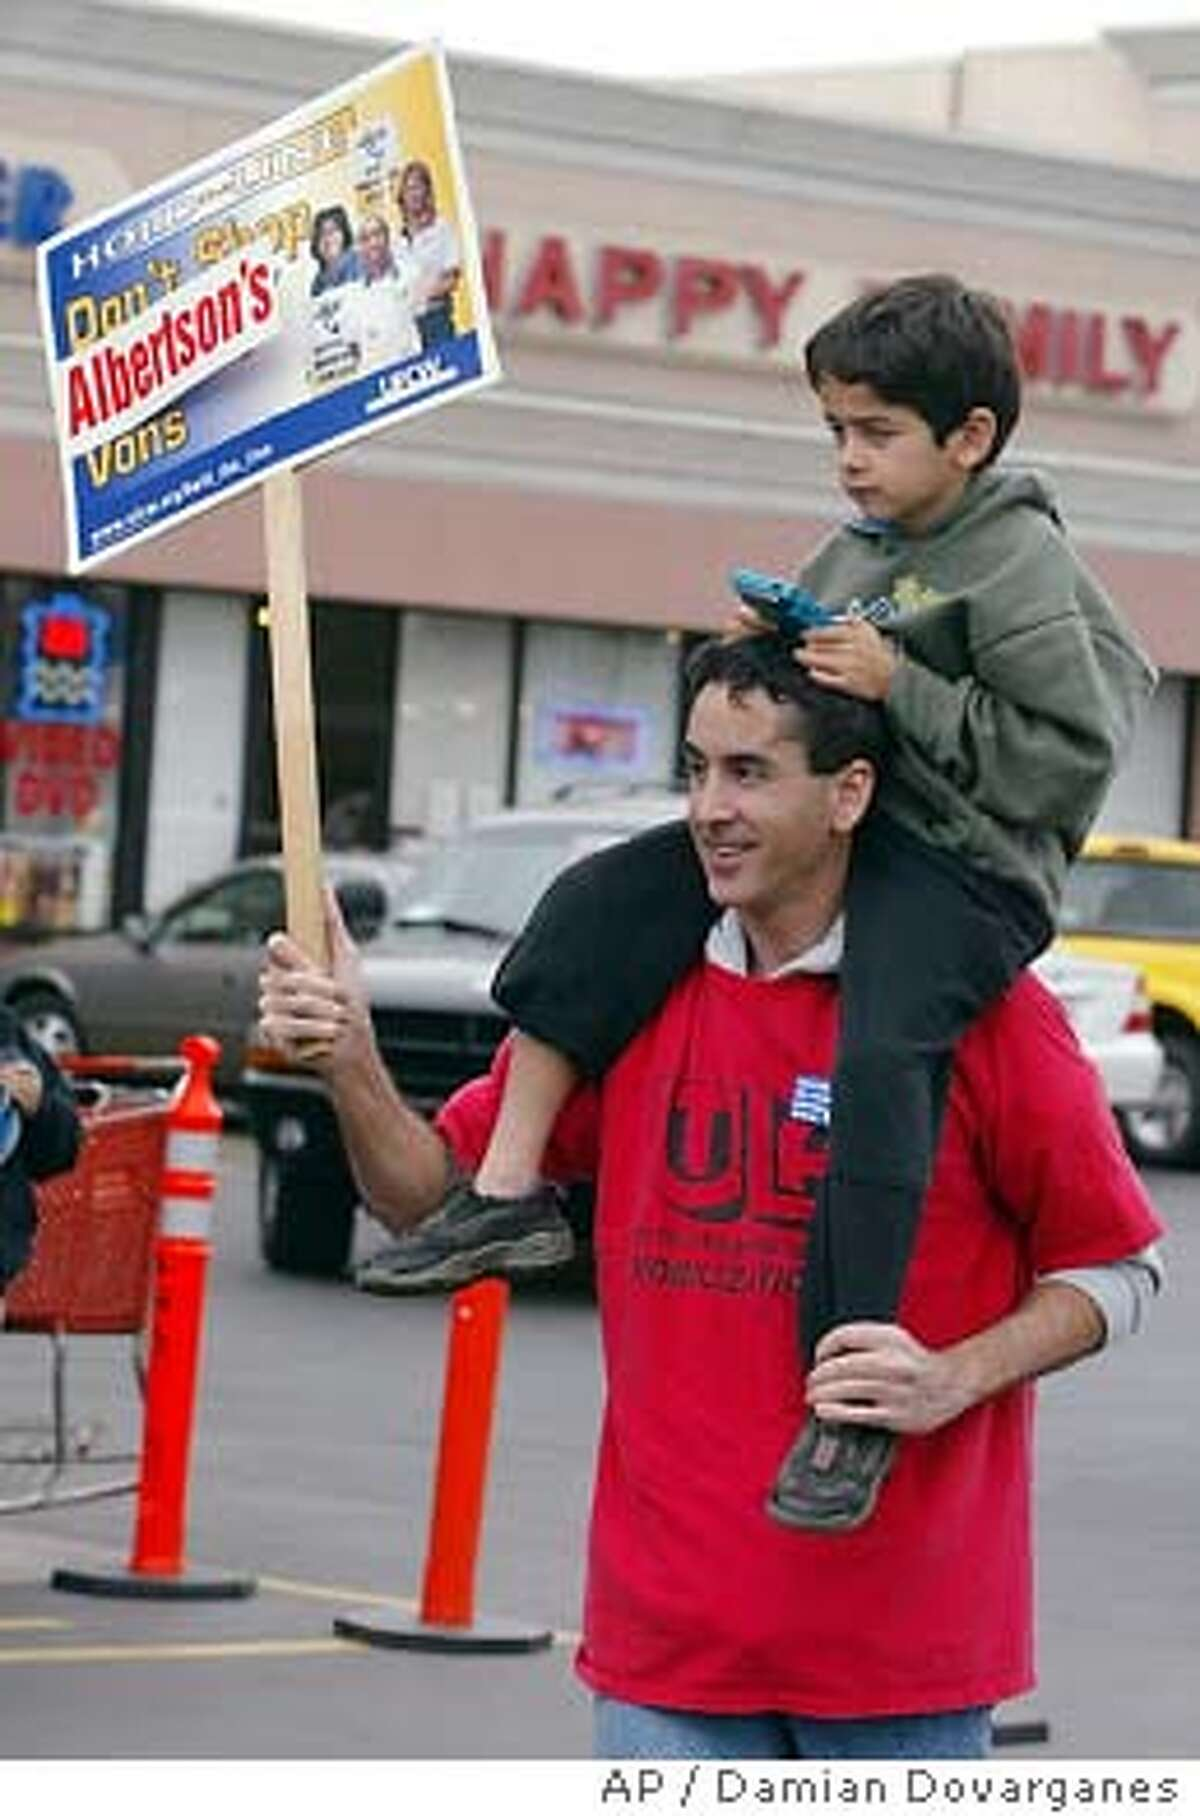 An unidentified worker and his son join the picketing line outside an Albertson's supermarket on the 133rd day of the strike-lockout, Saturday, Feb. 21, 2004, in Montebello, Calif. The strike-lockout began Oct. 11, a day after the roughly 70,000 United Food and Commercial Workers' union members voted to reject a labor contract offer from Albertsons Inc., Kroger Co., which owns Ralphs, and Safeway Inc., which runs Vons and Pavilions. Union leaders struck Vons and Pavilions, but Ralphs and Albertsons retaliated by locking out their workers. (AP Photo/Damian Dovarganes)